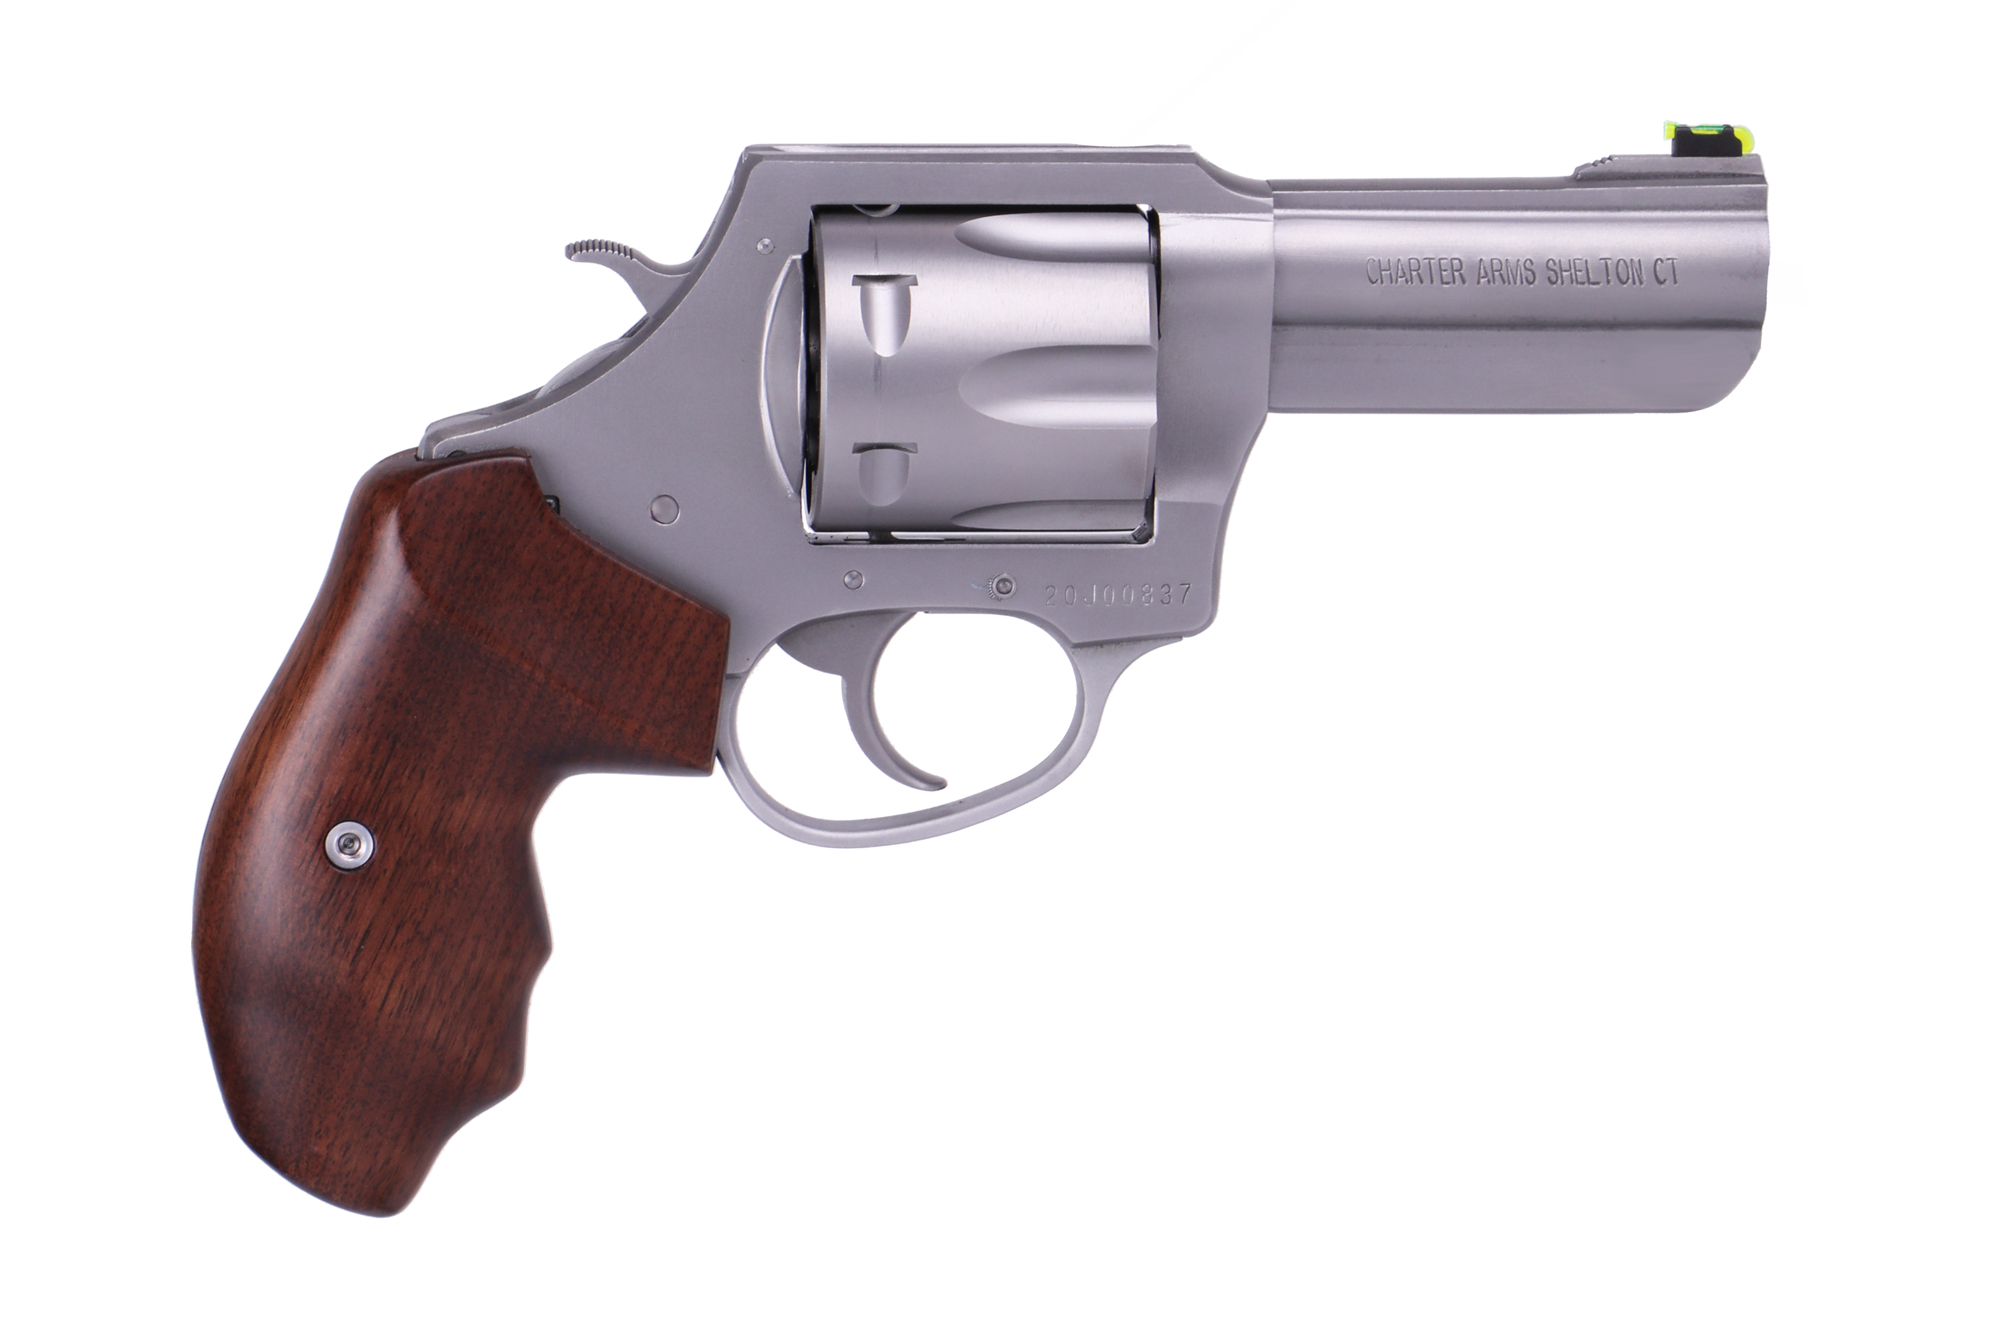 Charter Arms THE PROFESSIONAL V 357 MAGNUM